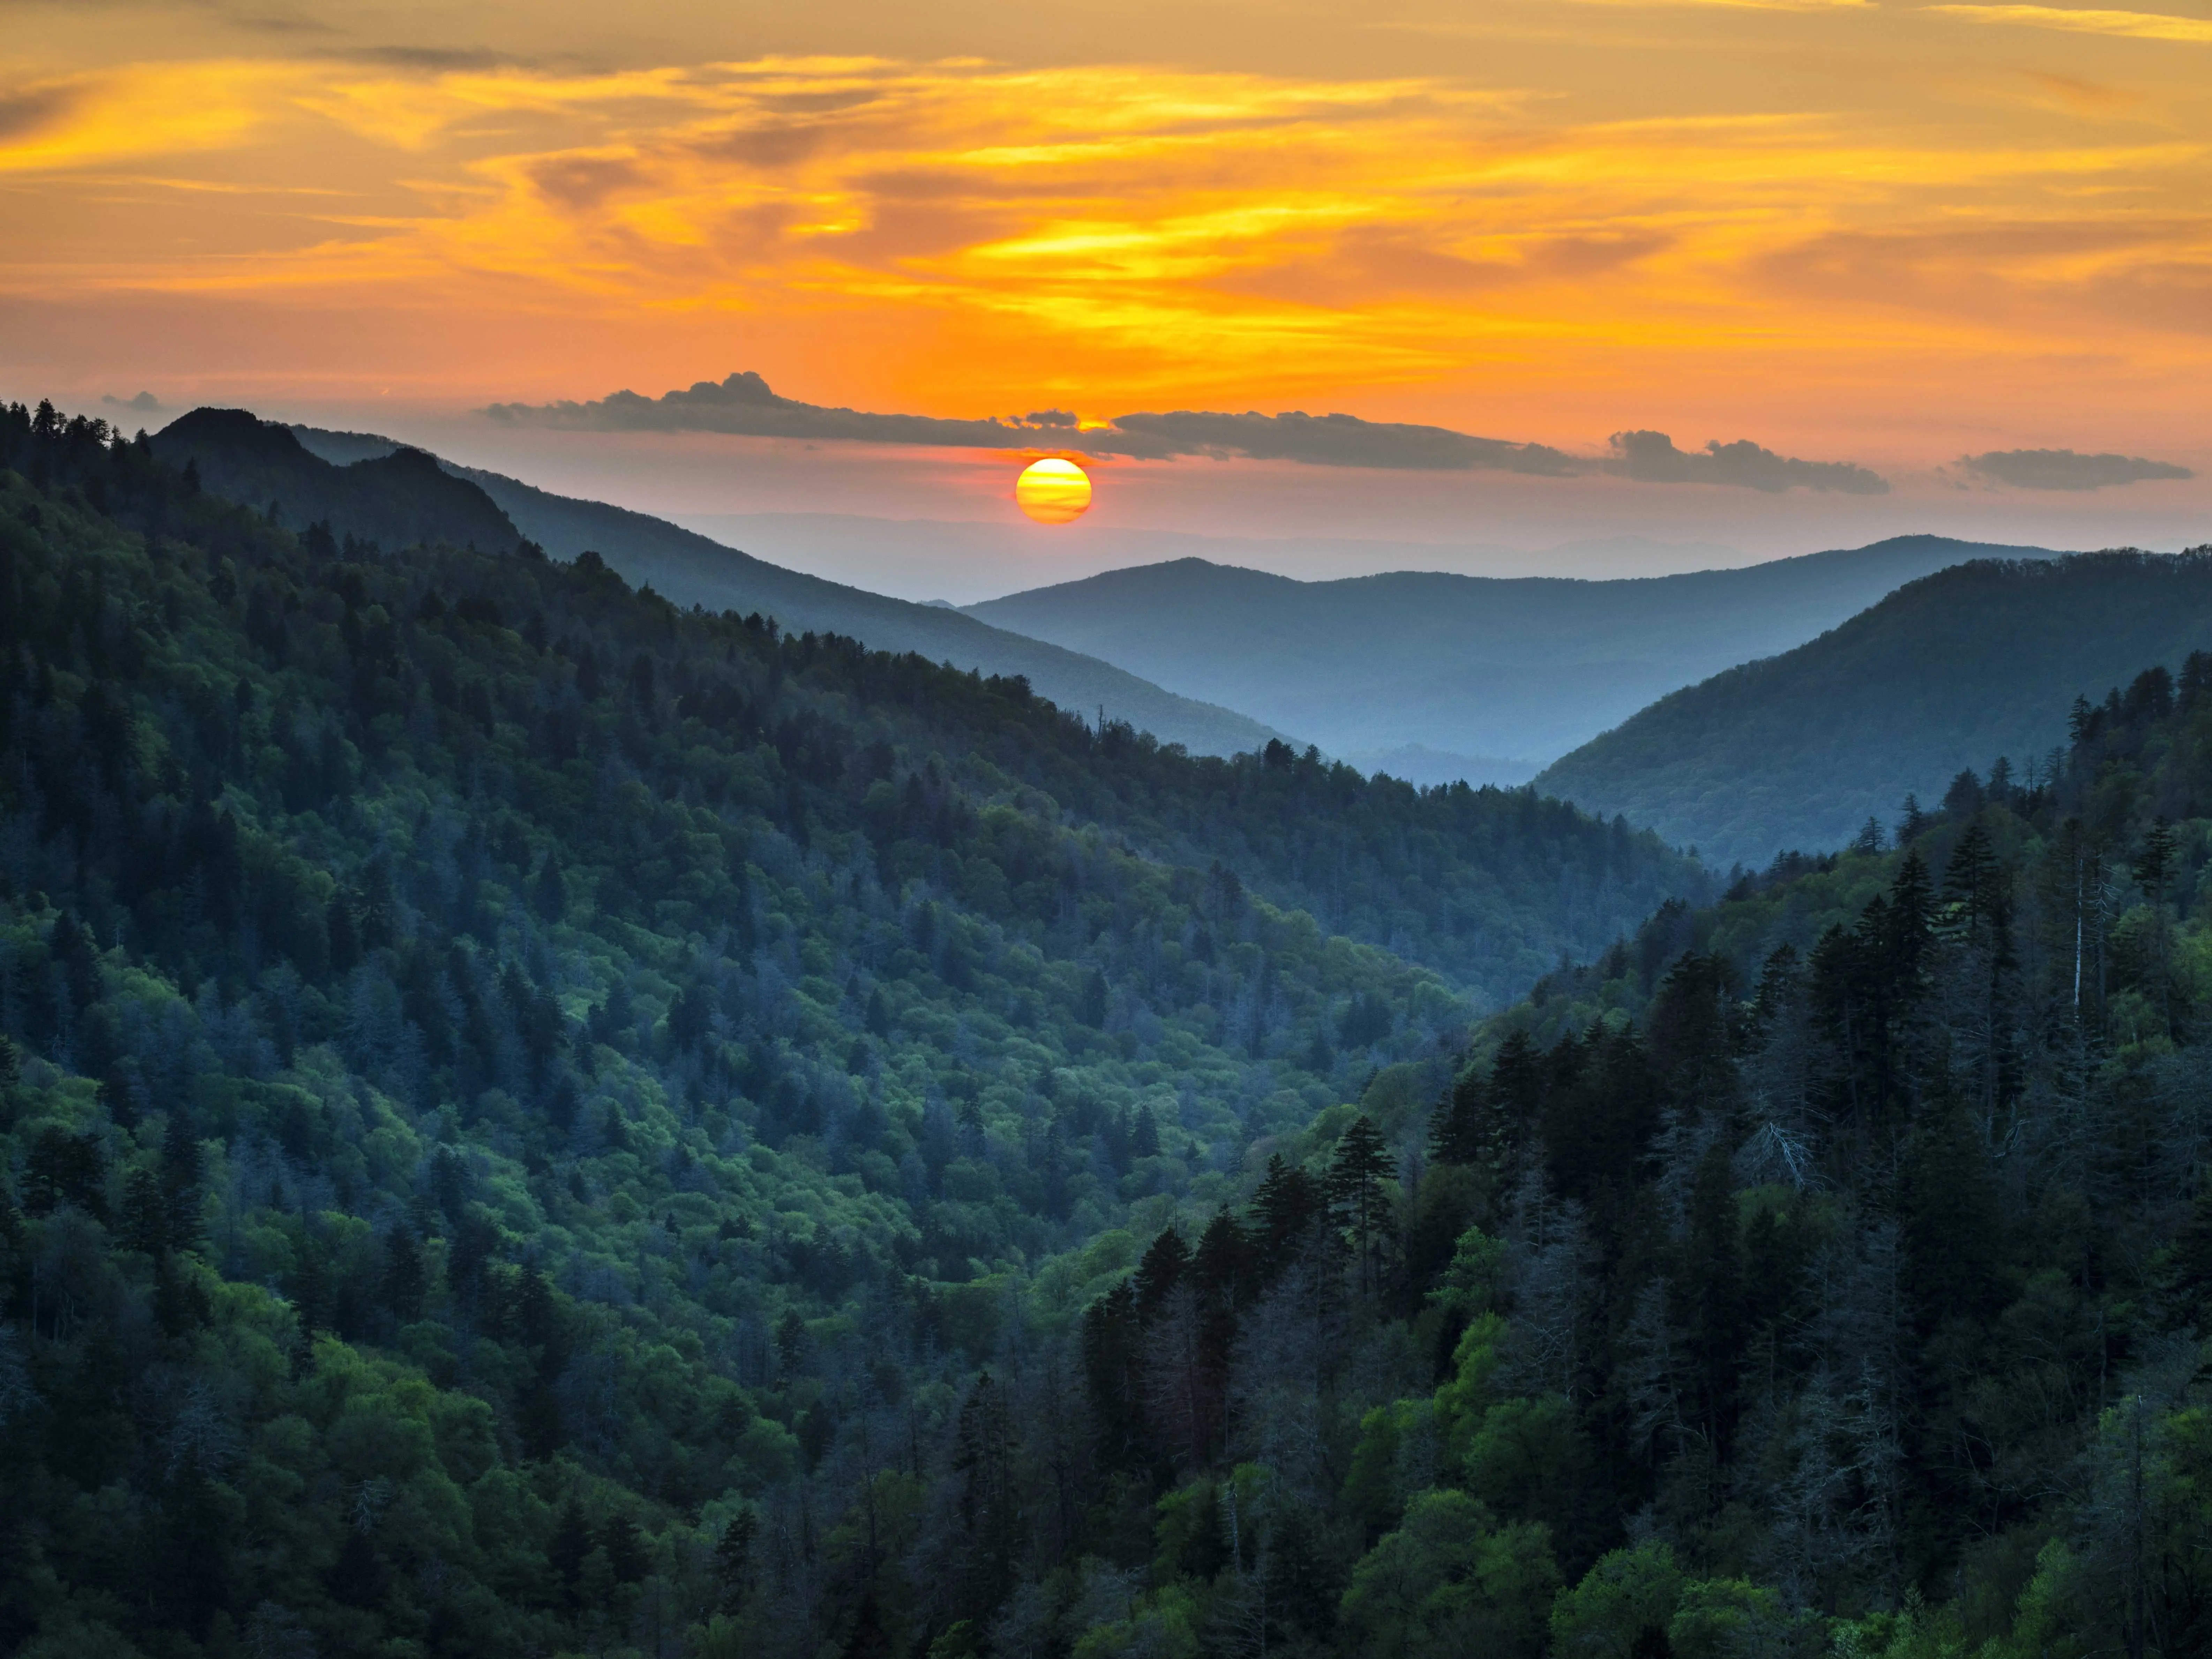 According to UNESCO, Great Smoky Mountains National Park, which stretches across Tennessee and North Carolina, has almost as many trees as all of Europe, which is why it is the most visited national park in the US.